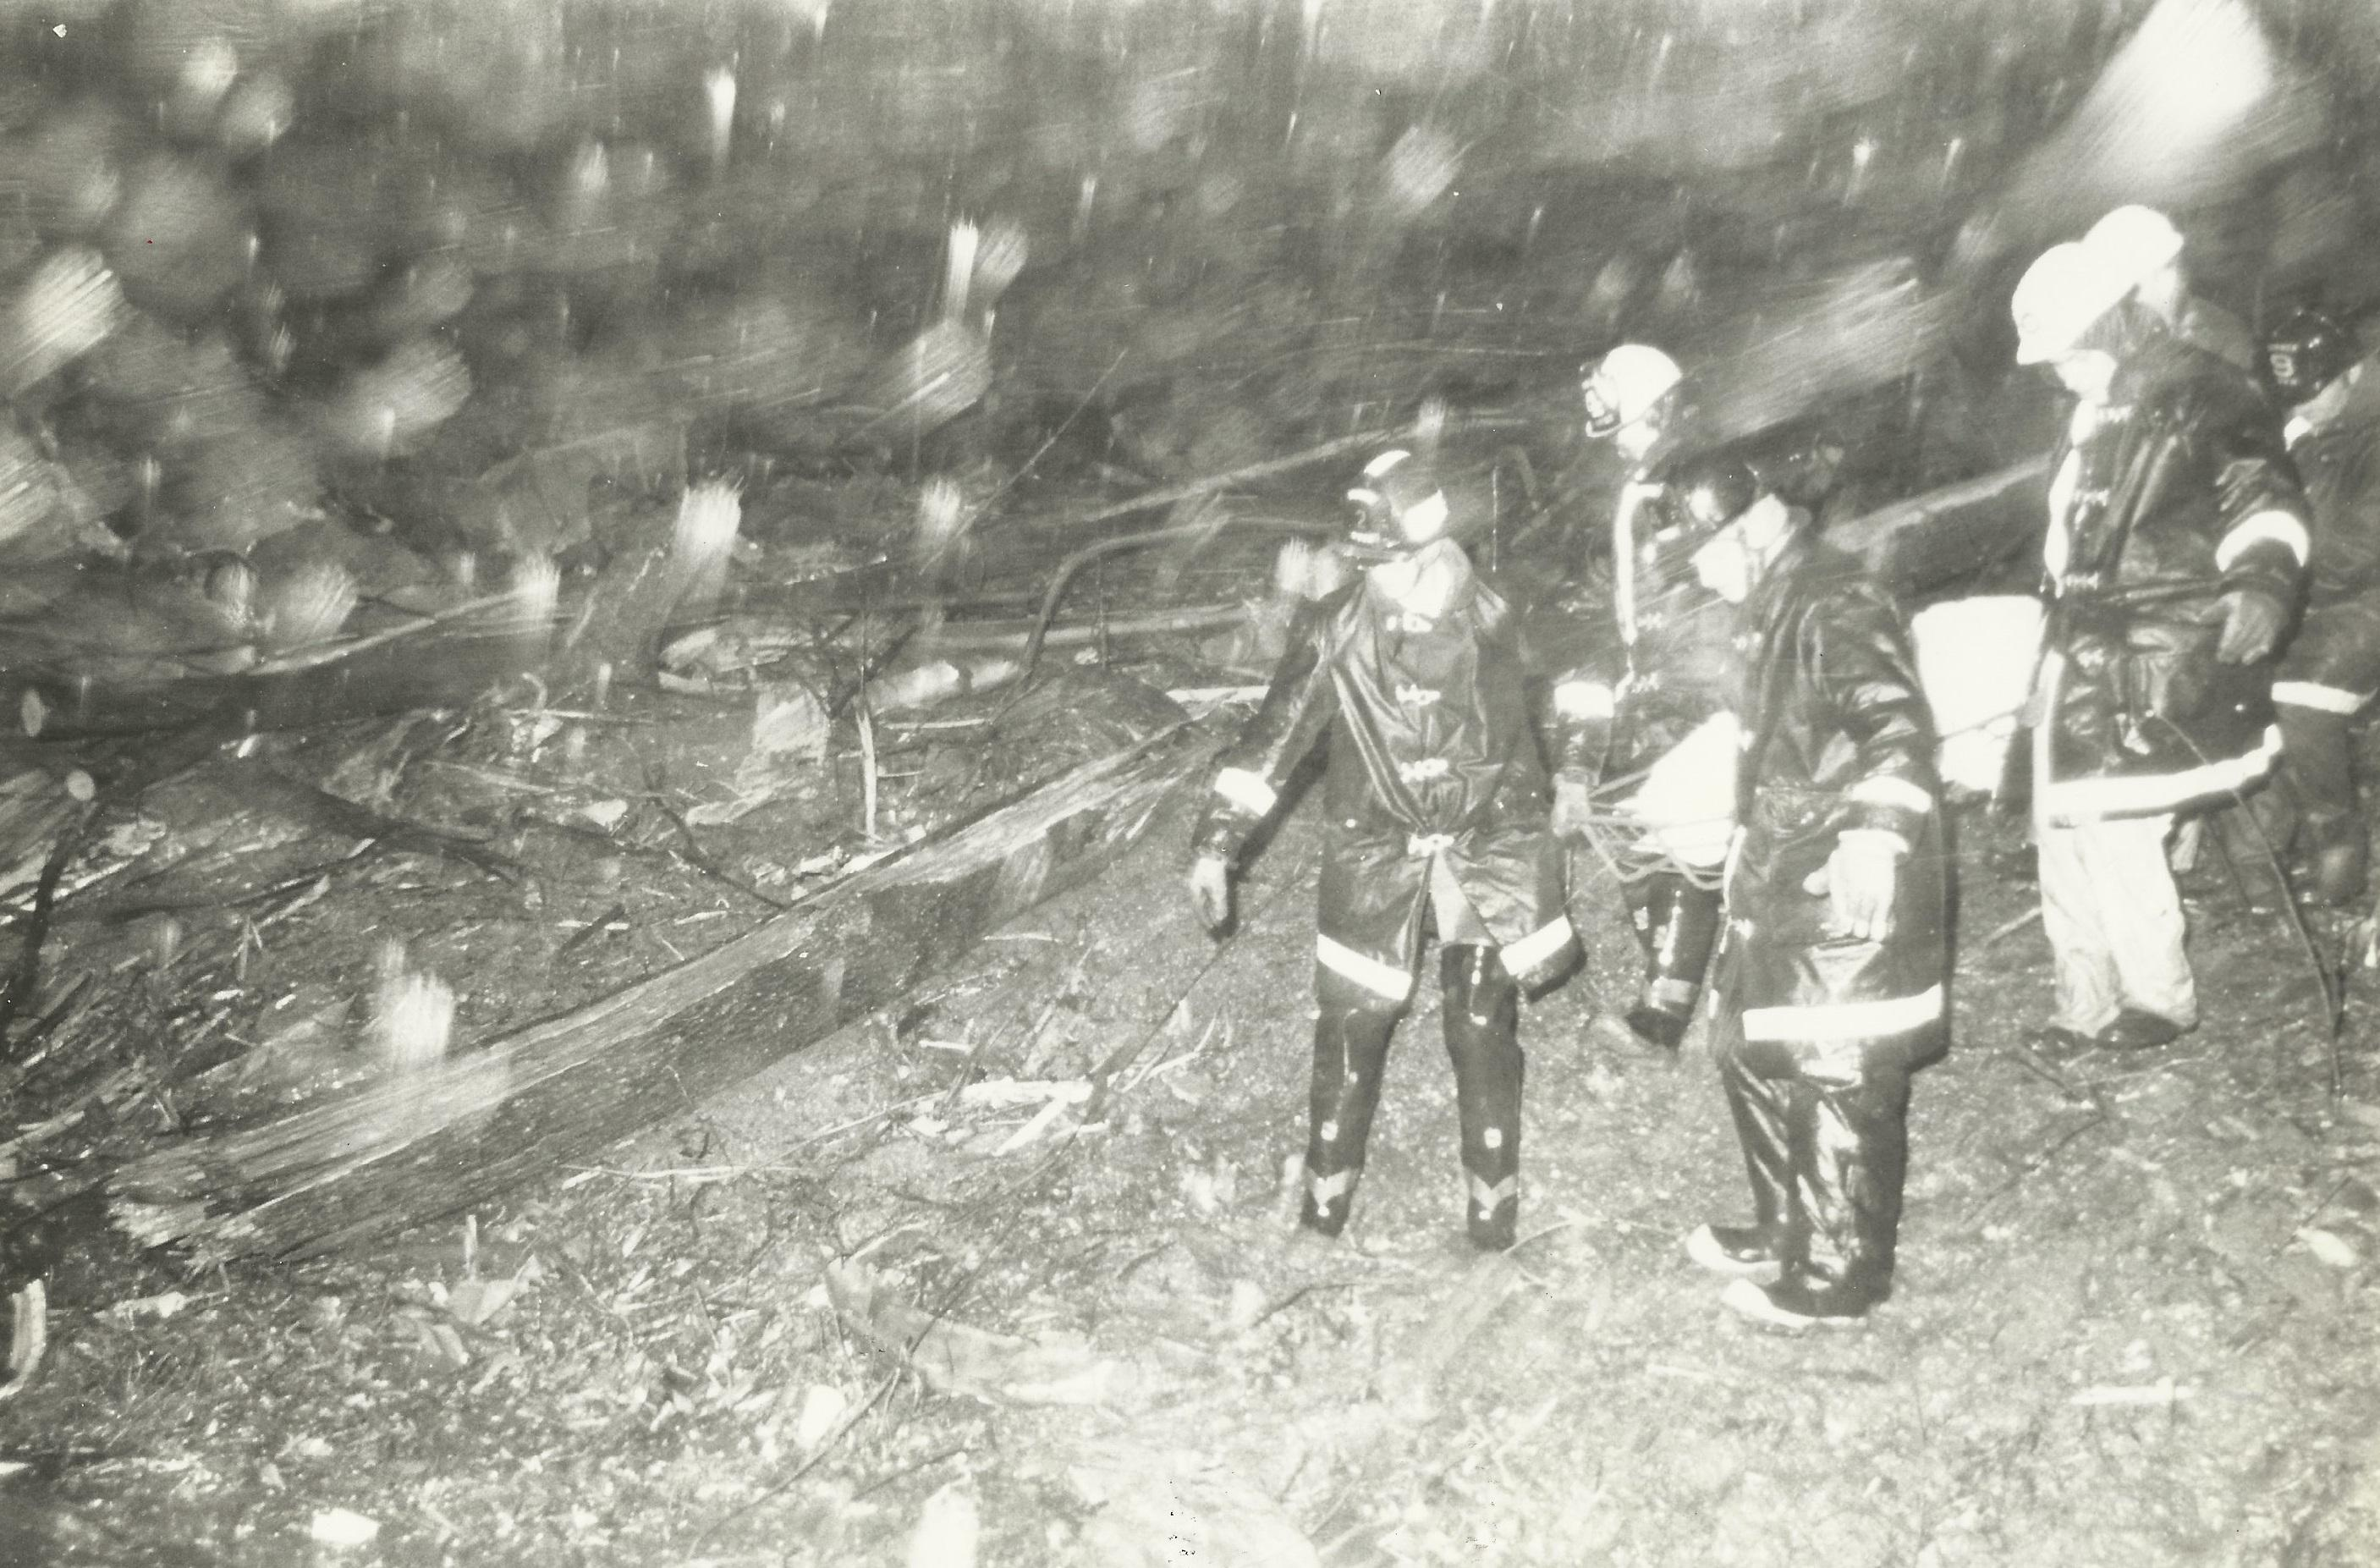 Crews from Loudoun County Fire Department searching for any possible survivors less than an hour after the crash of TWA 514. Snow began to fall at sundown, making their efforts even more challenging. (Photo courtesy of Oliver Dube)